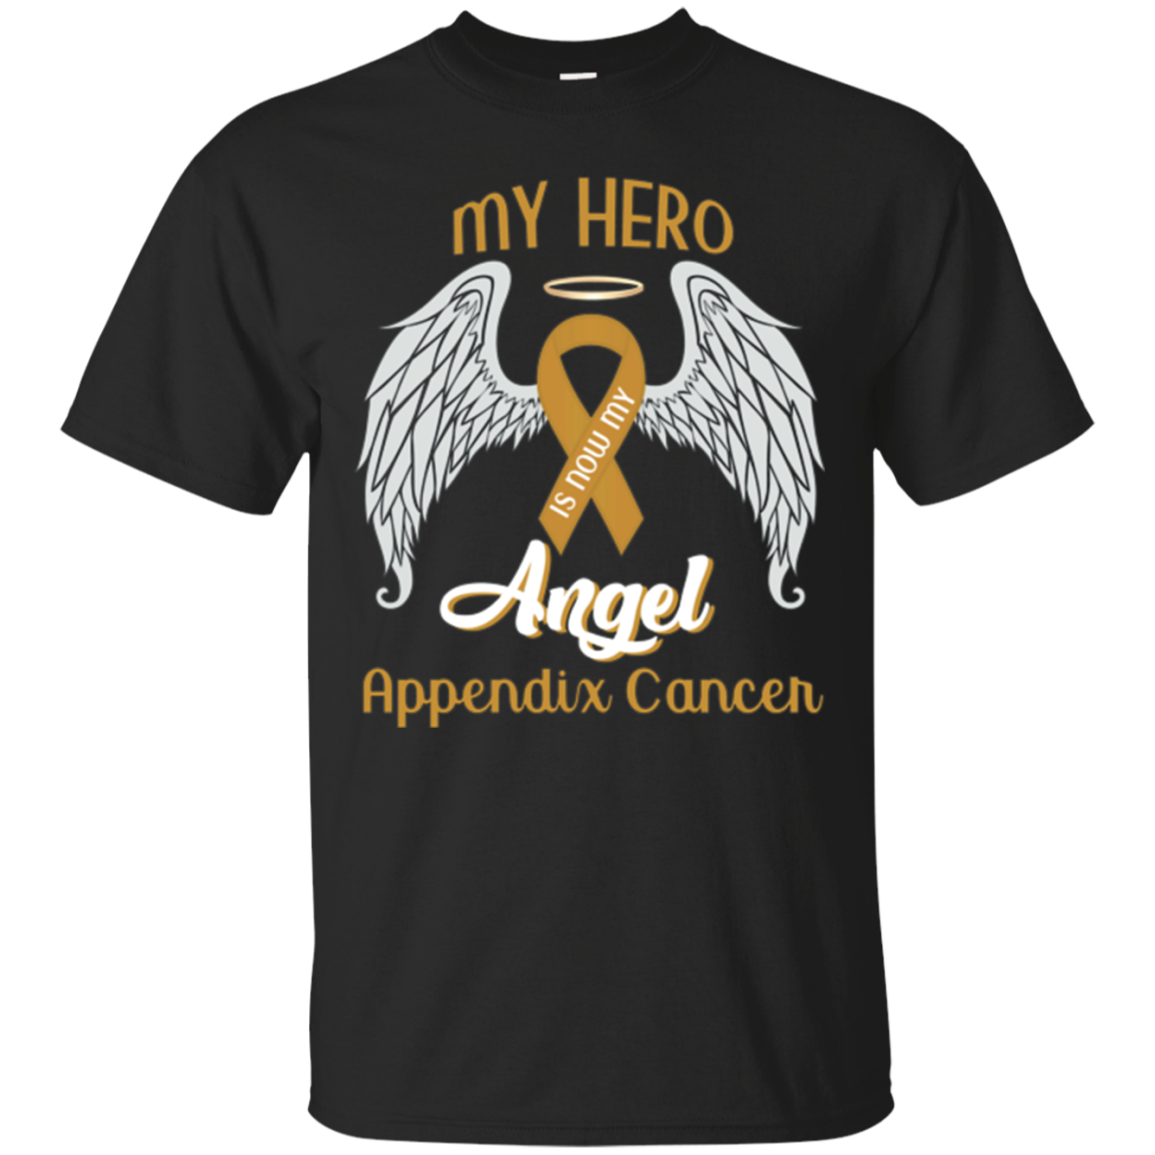 My Hero Is Now My Angel Appendix Cancer Awareness T-Shirt